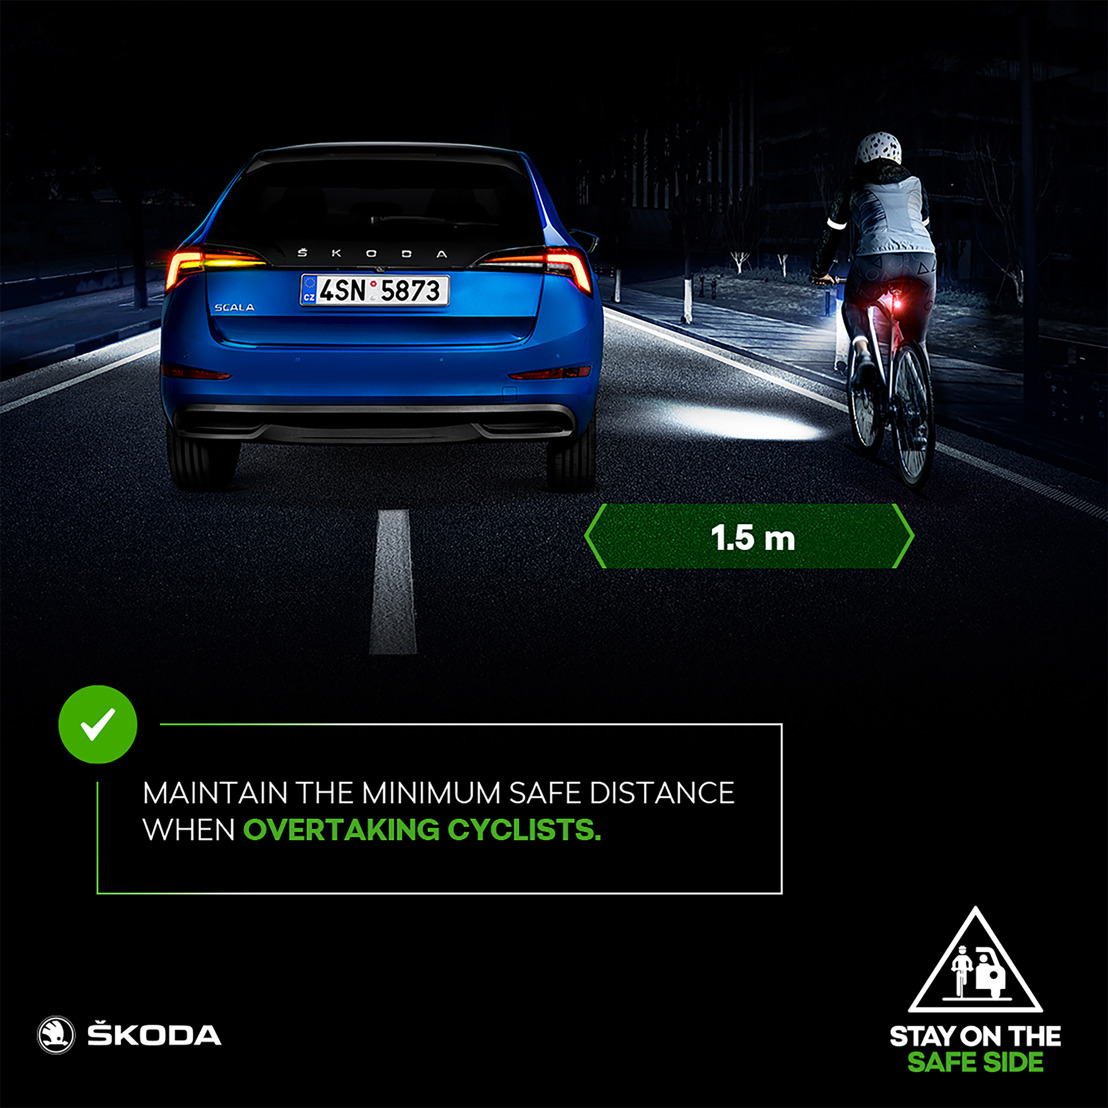 ŠKODA launches 'STAY ON THE SAFE SIDE' safety campaign for cyclists and motorists